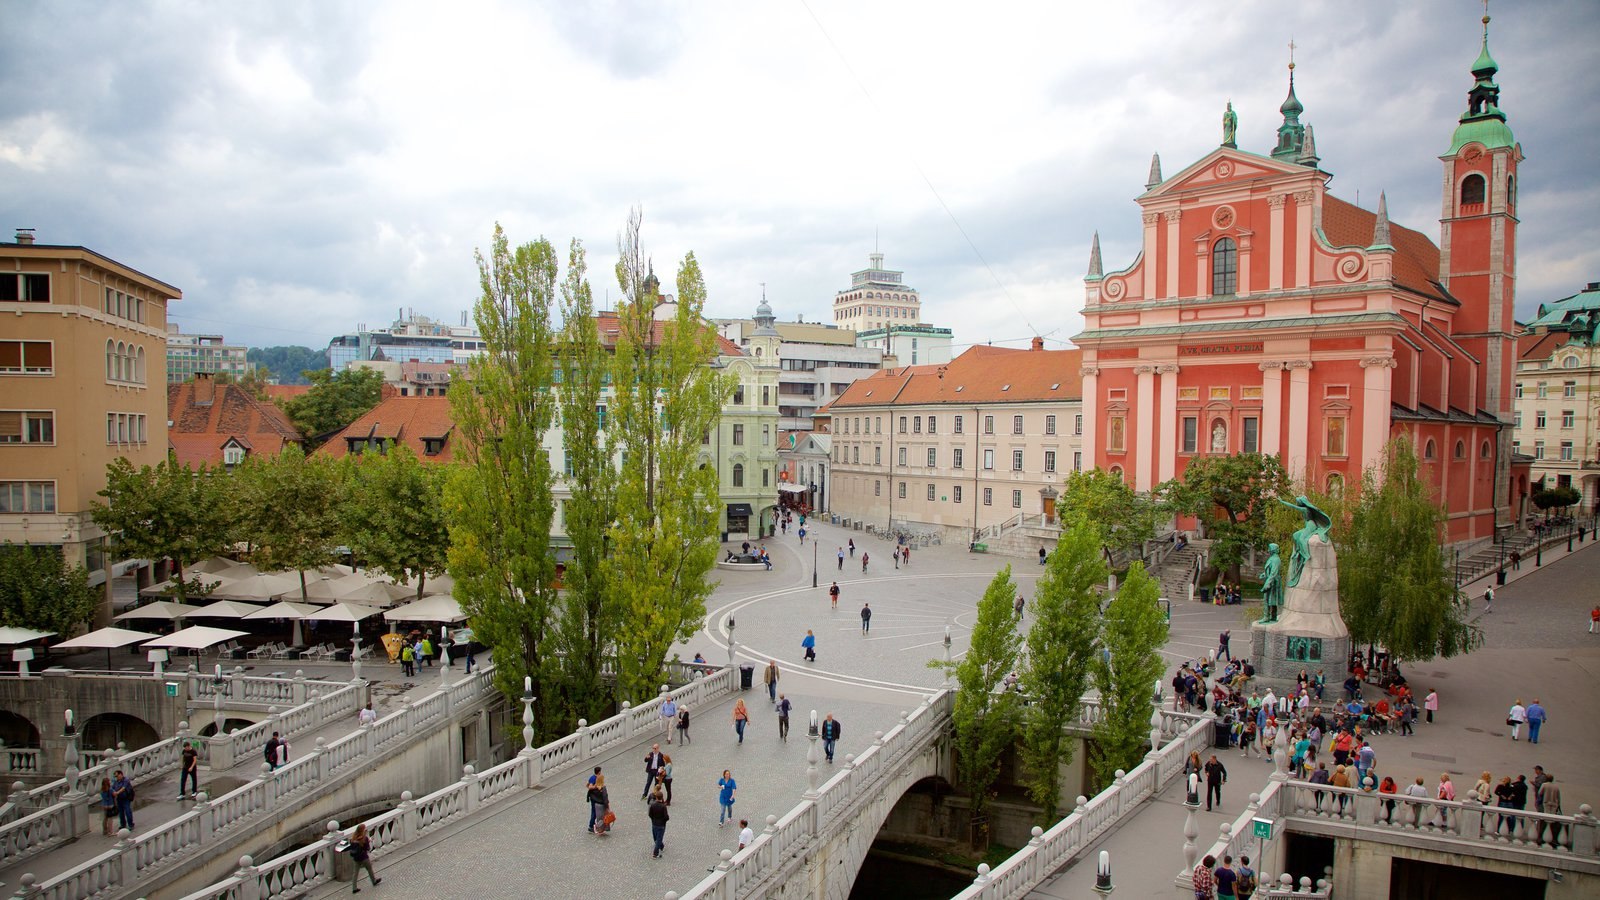 Triple Bridge which includes heritage architecture, a square or plaza and a city